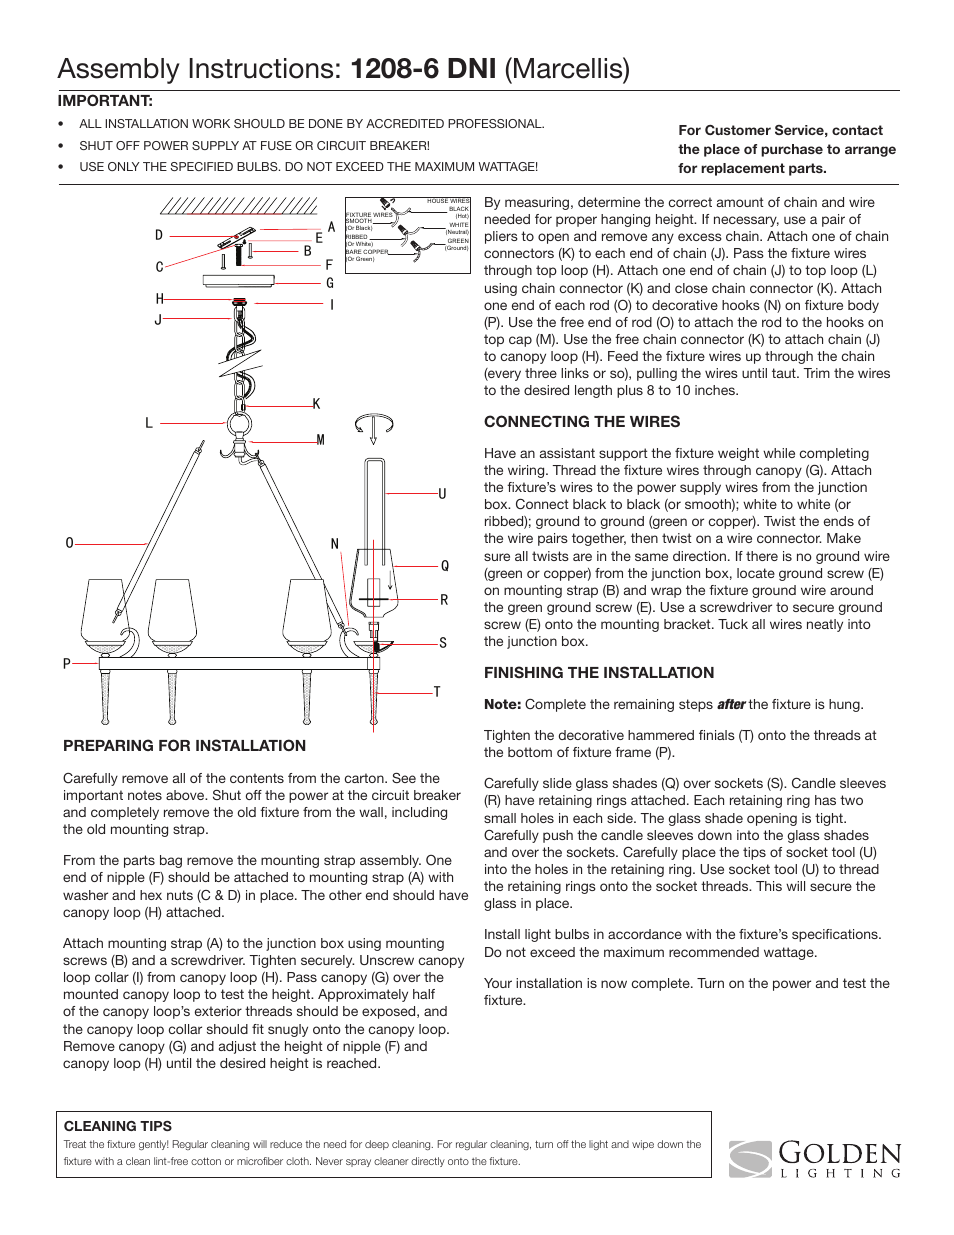 Golden Lighting 1208 6 Dni User Manual 1 Page Wiring A Light Fixture On Loop